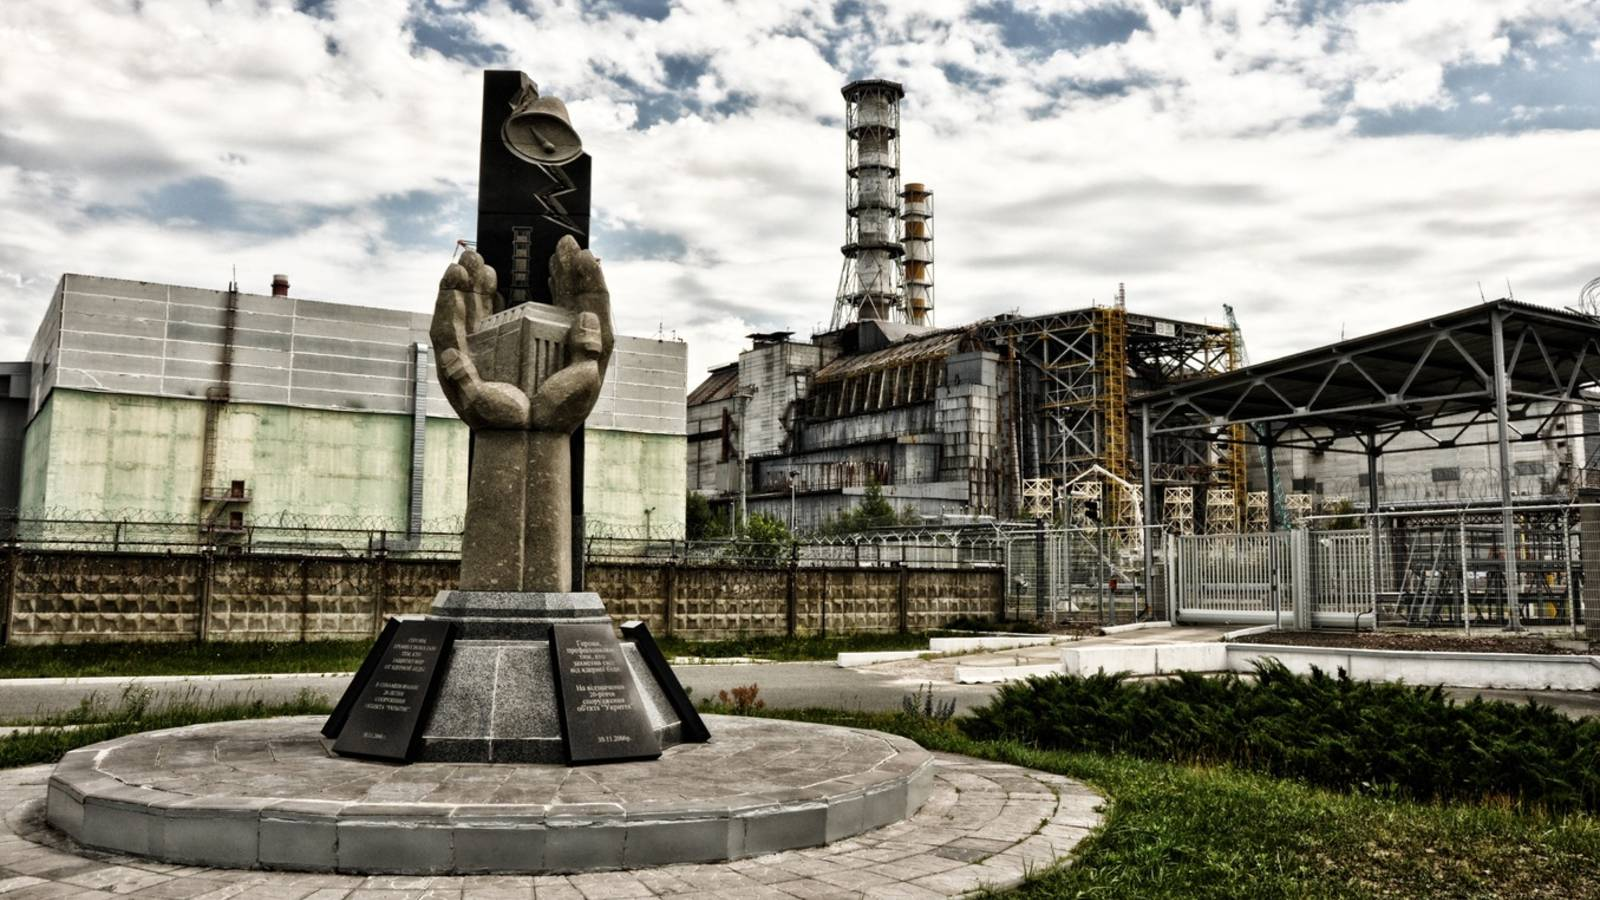 Chernobyl: wildlife is back after radioactive disaster